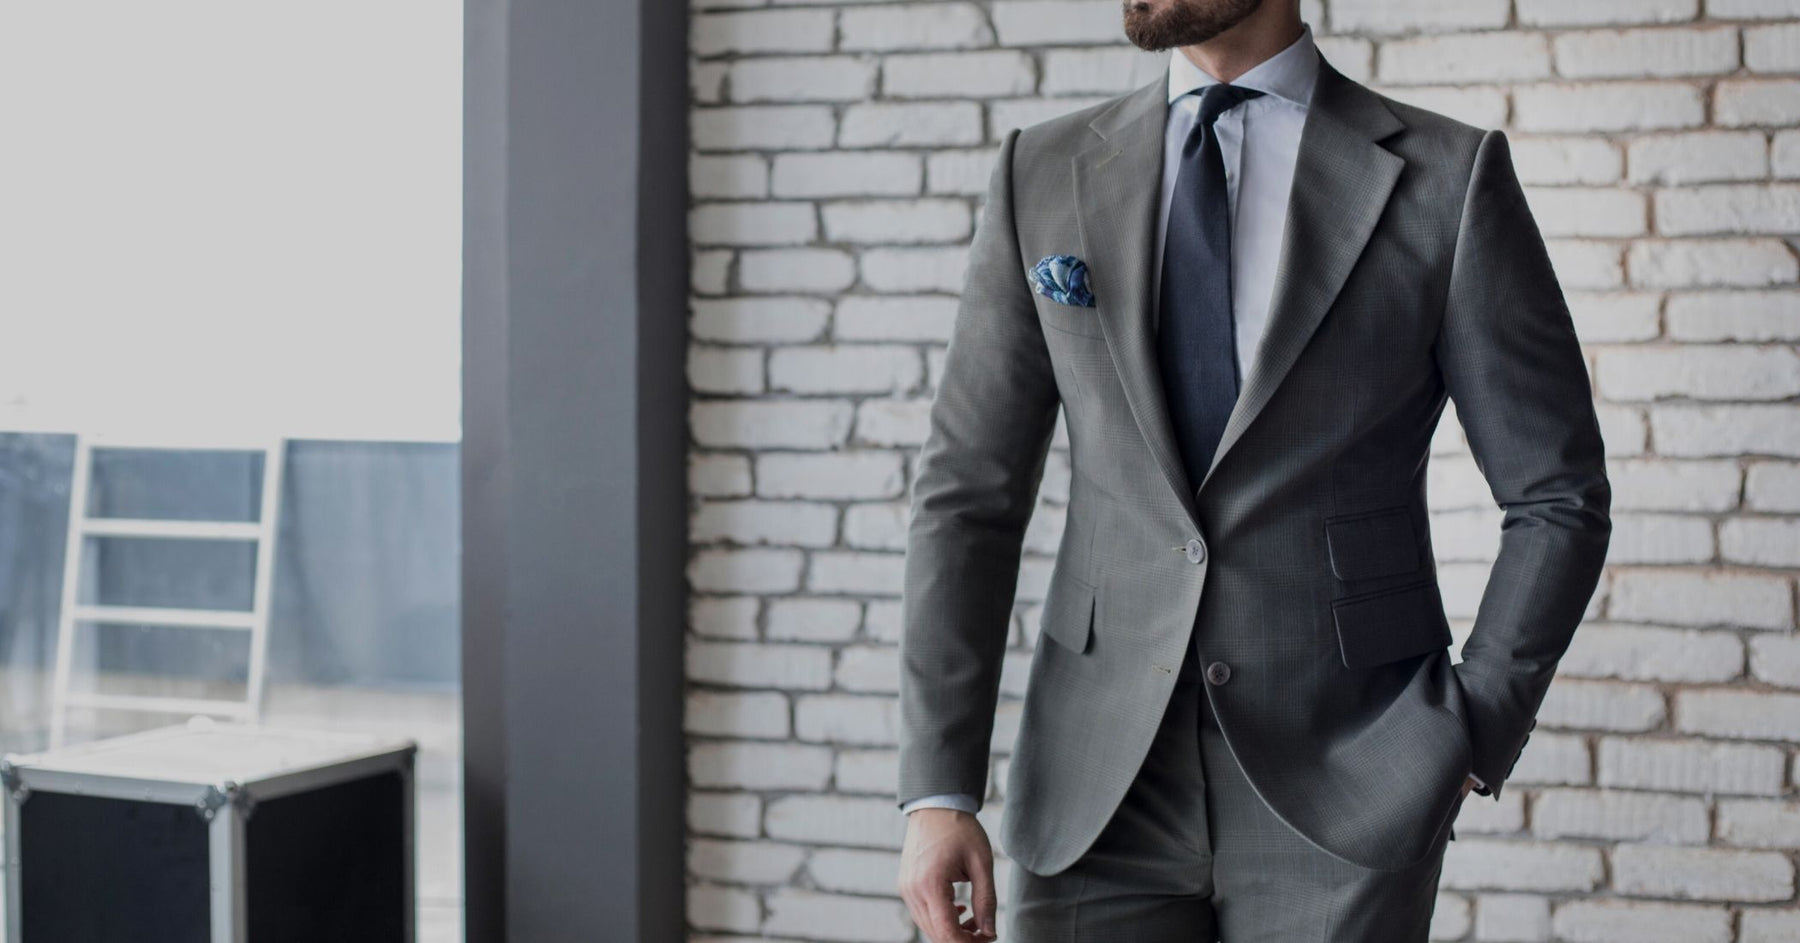 Karako Suits Has Been Around Since 1982 Helping Men Get Dressed Their Best.